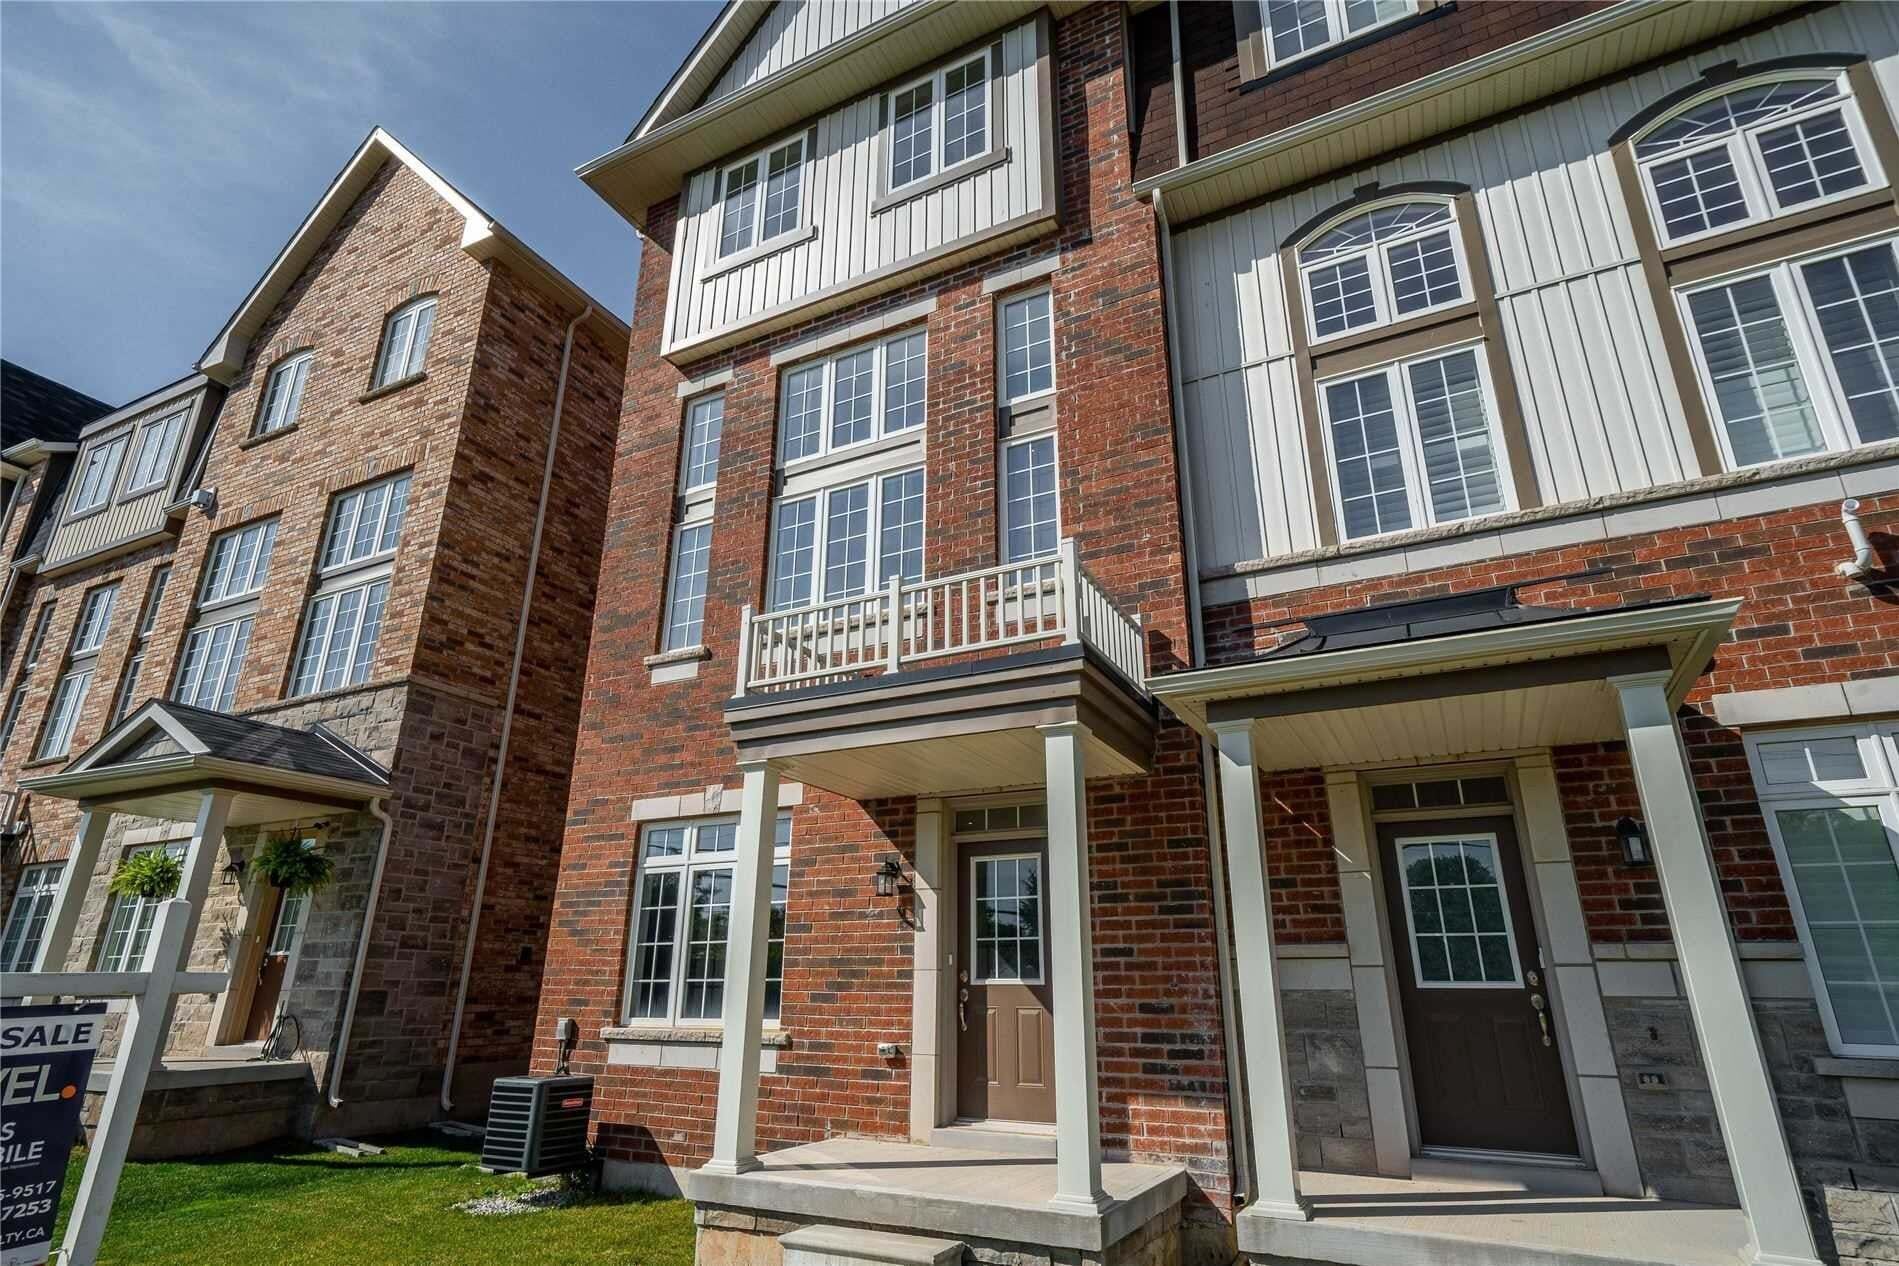 Townhouse for sale at 82 Hugill Wy Hamilton Ontario - MLS: X4859852